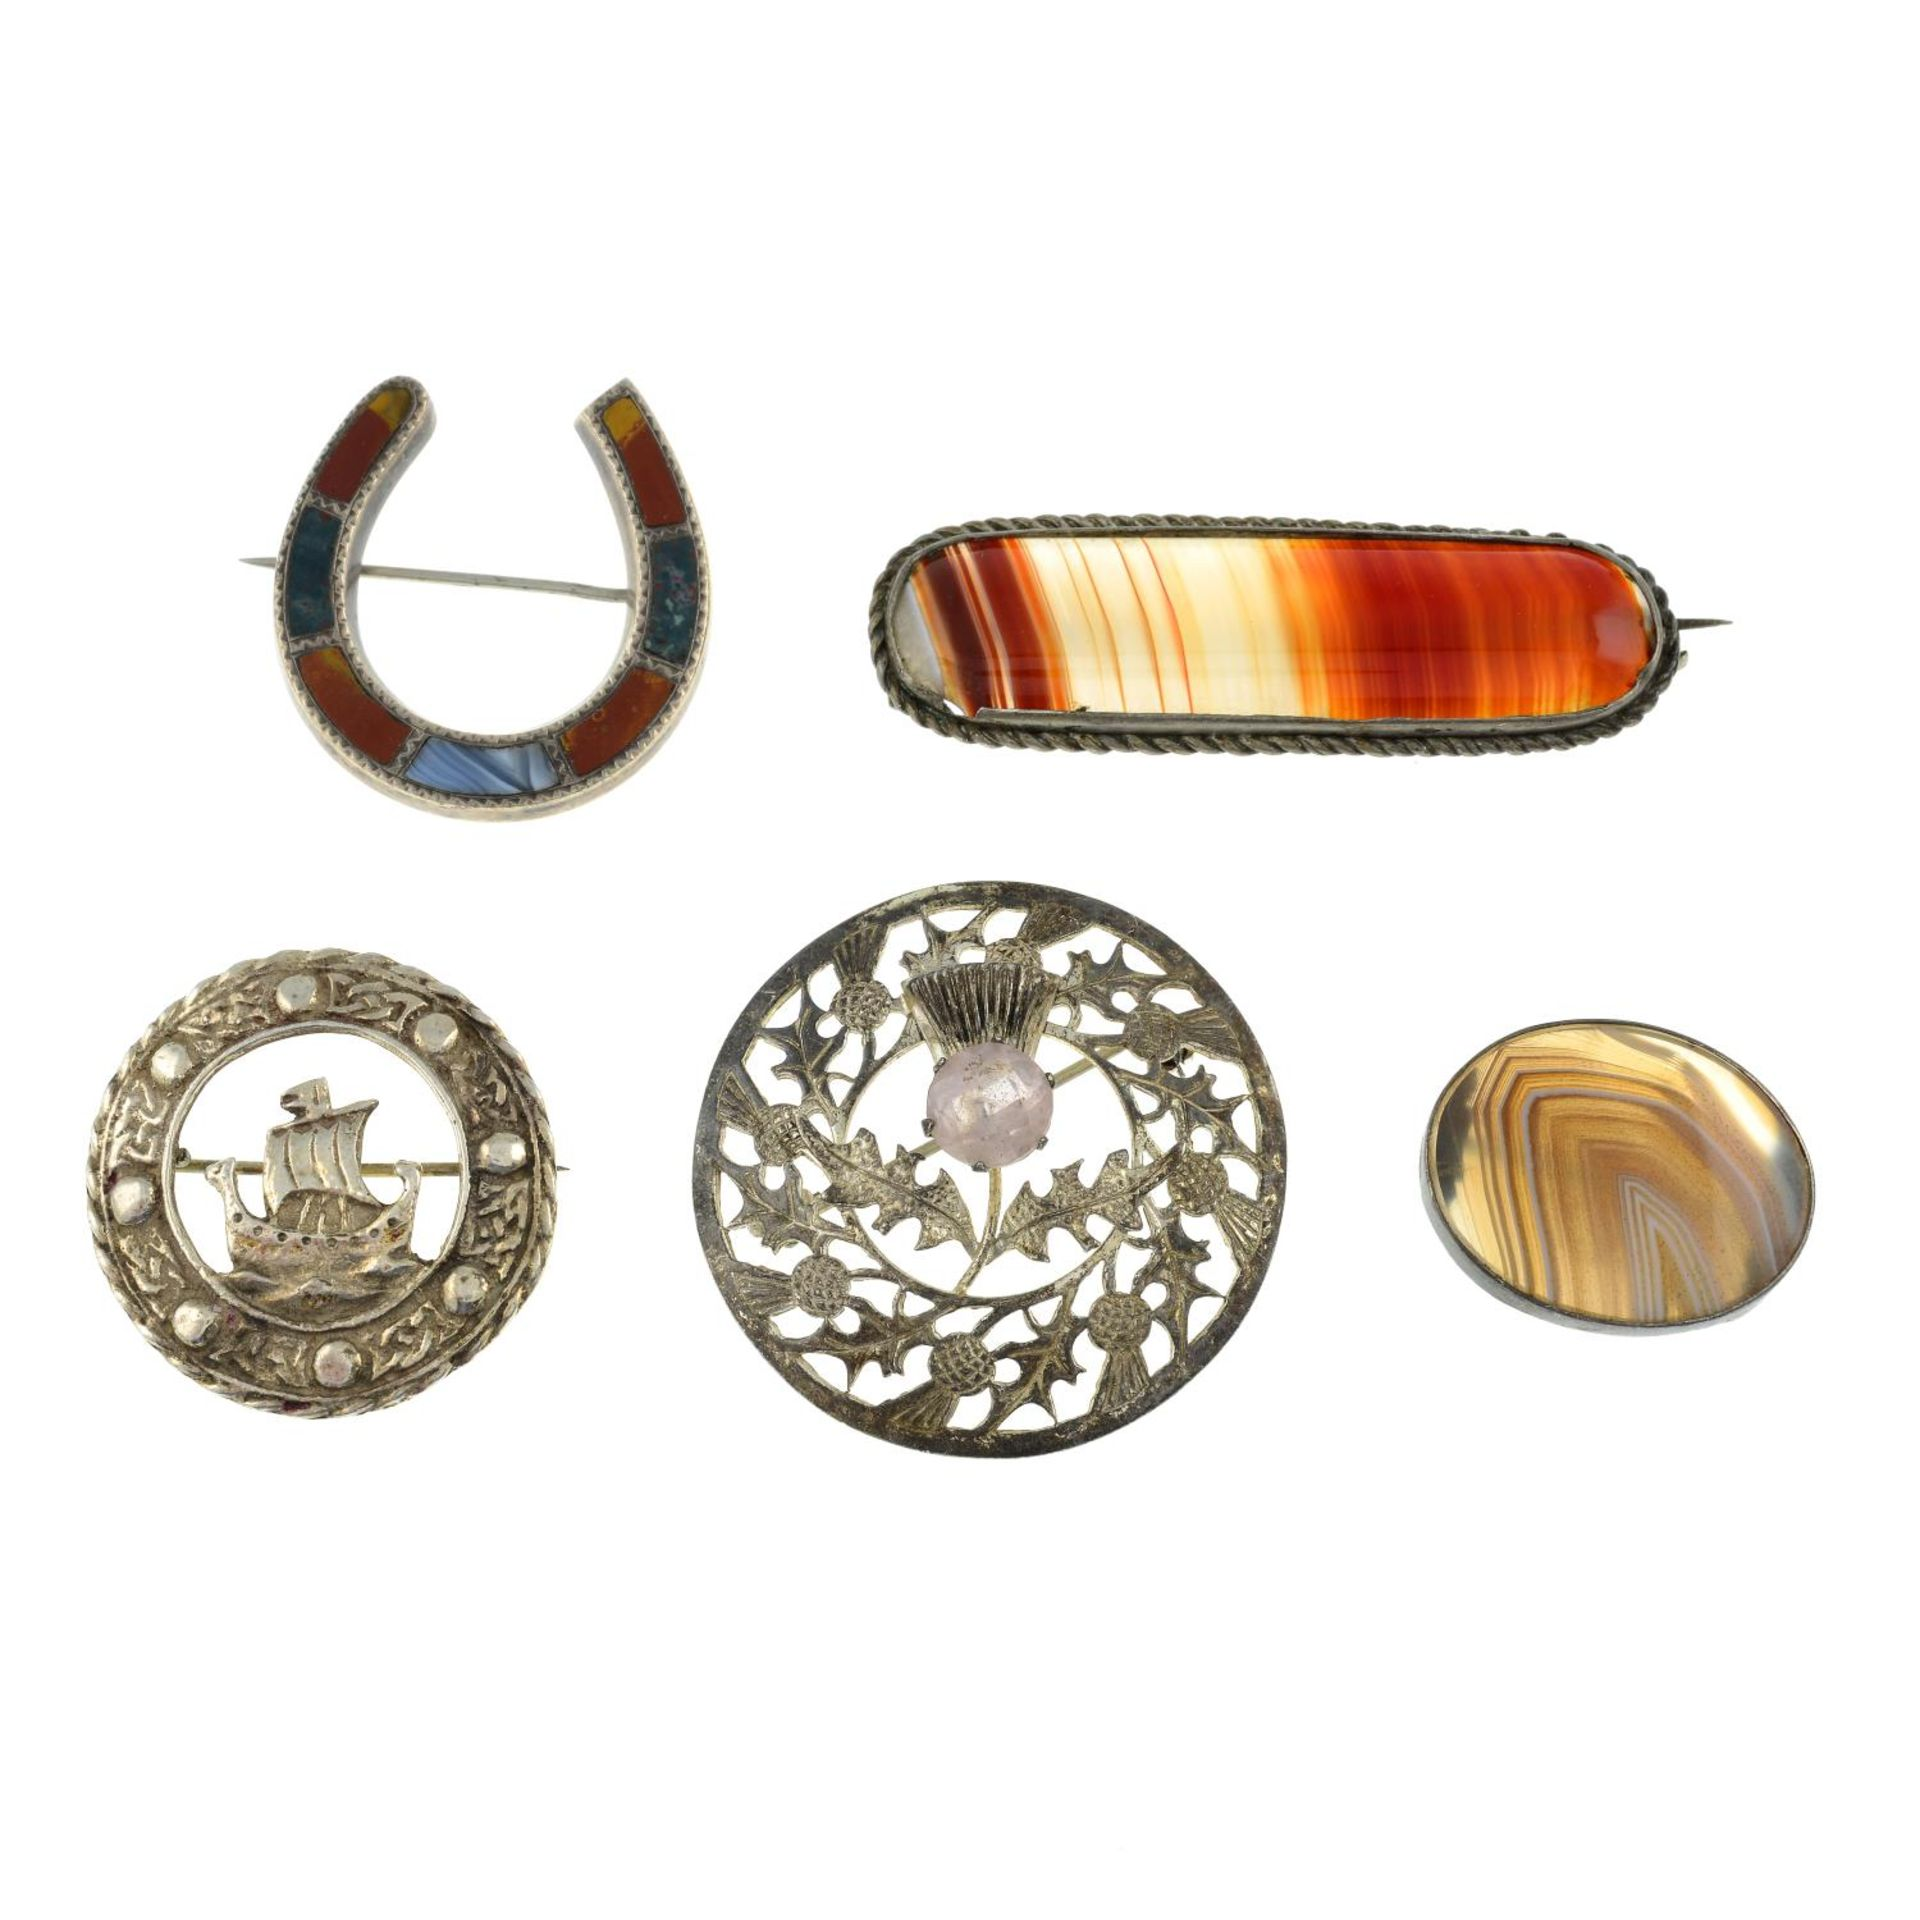 A selection of mainly Scottish agate brooches, to include an agate panel horseshoe brooch.